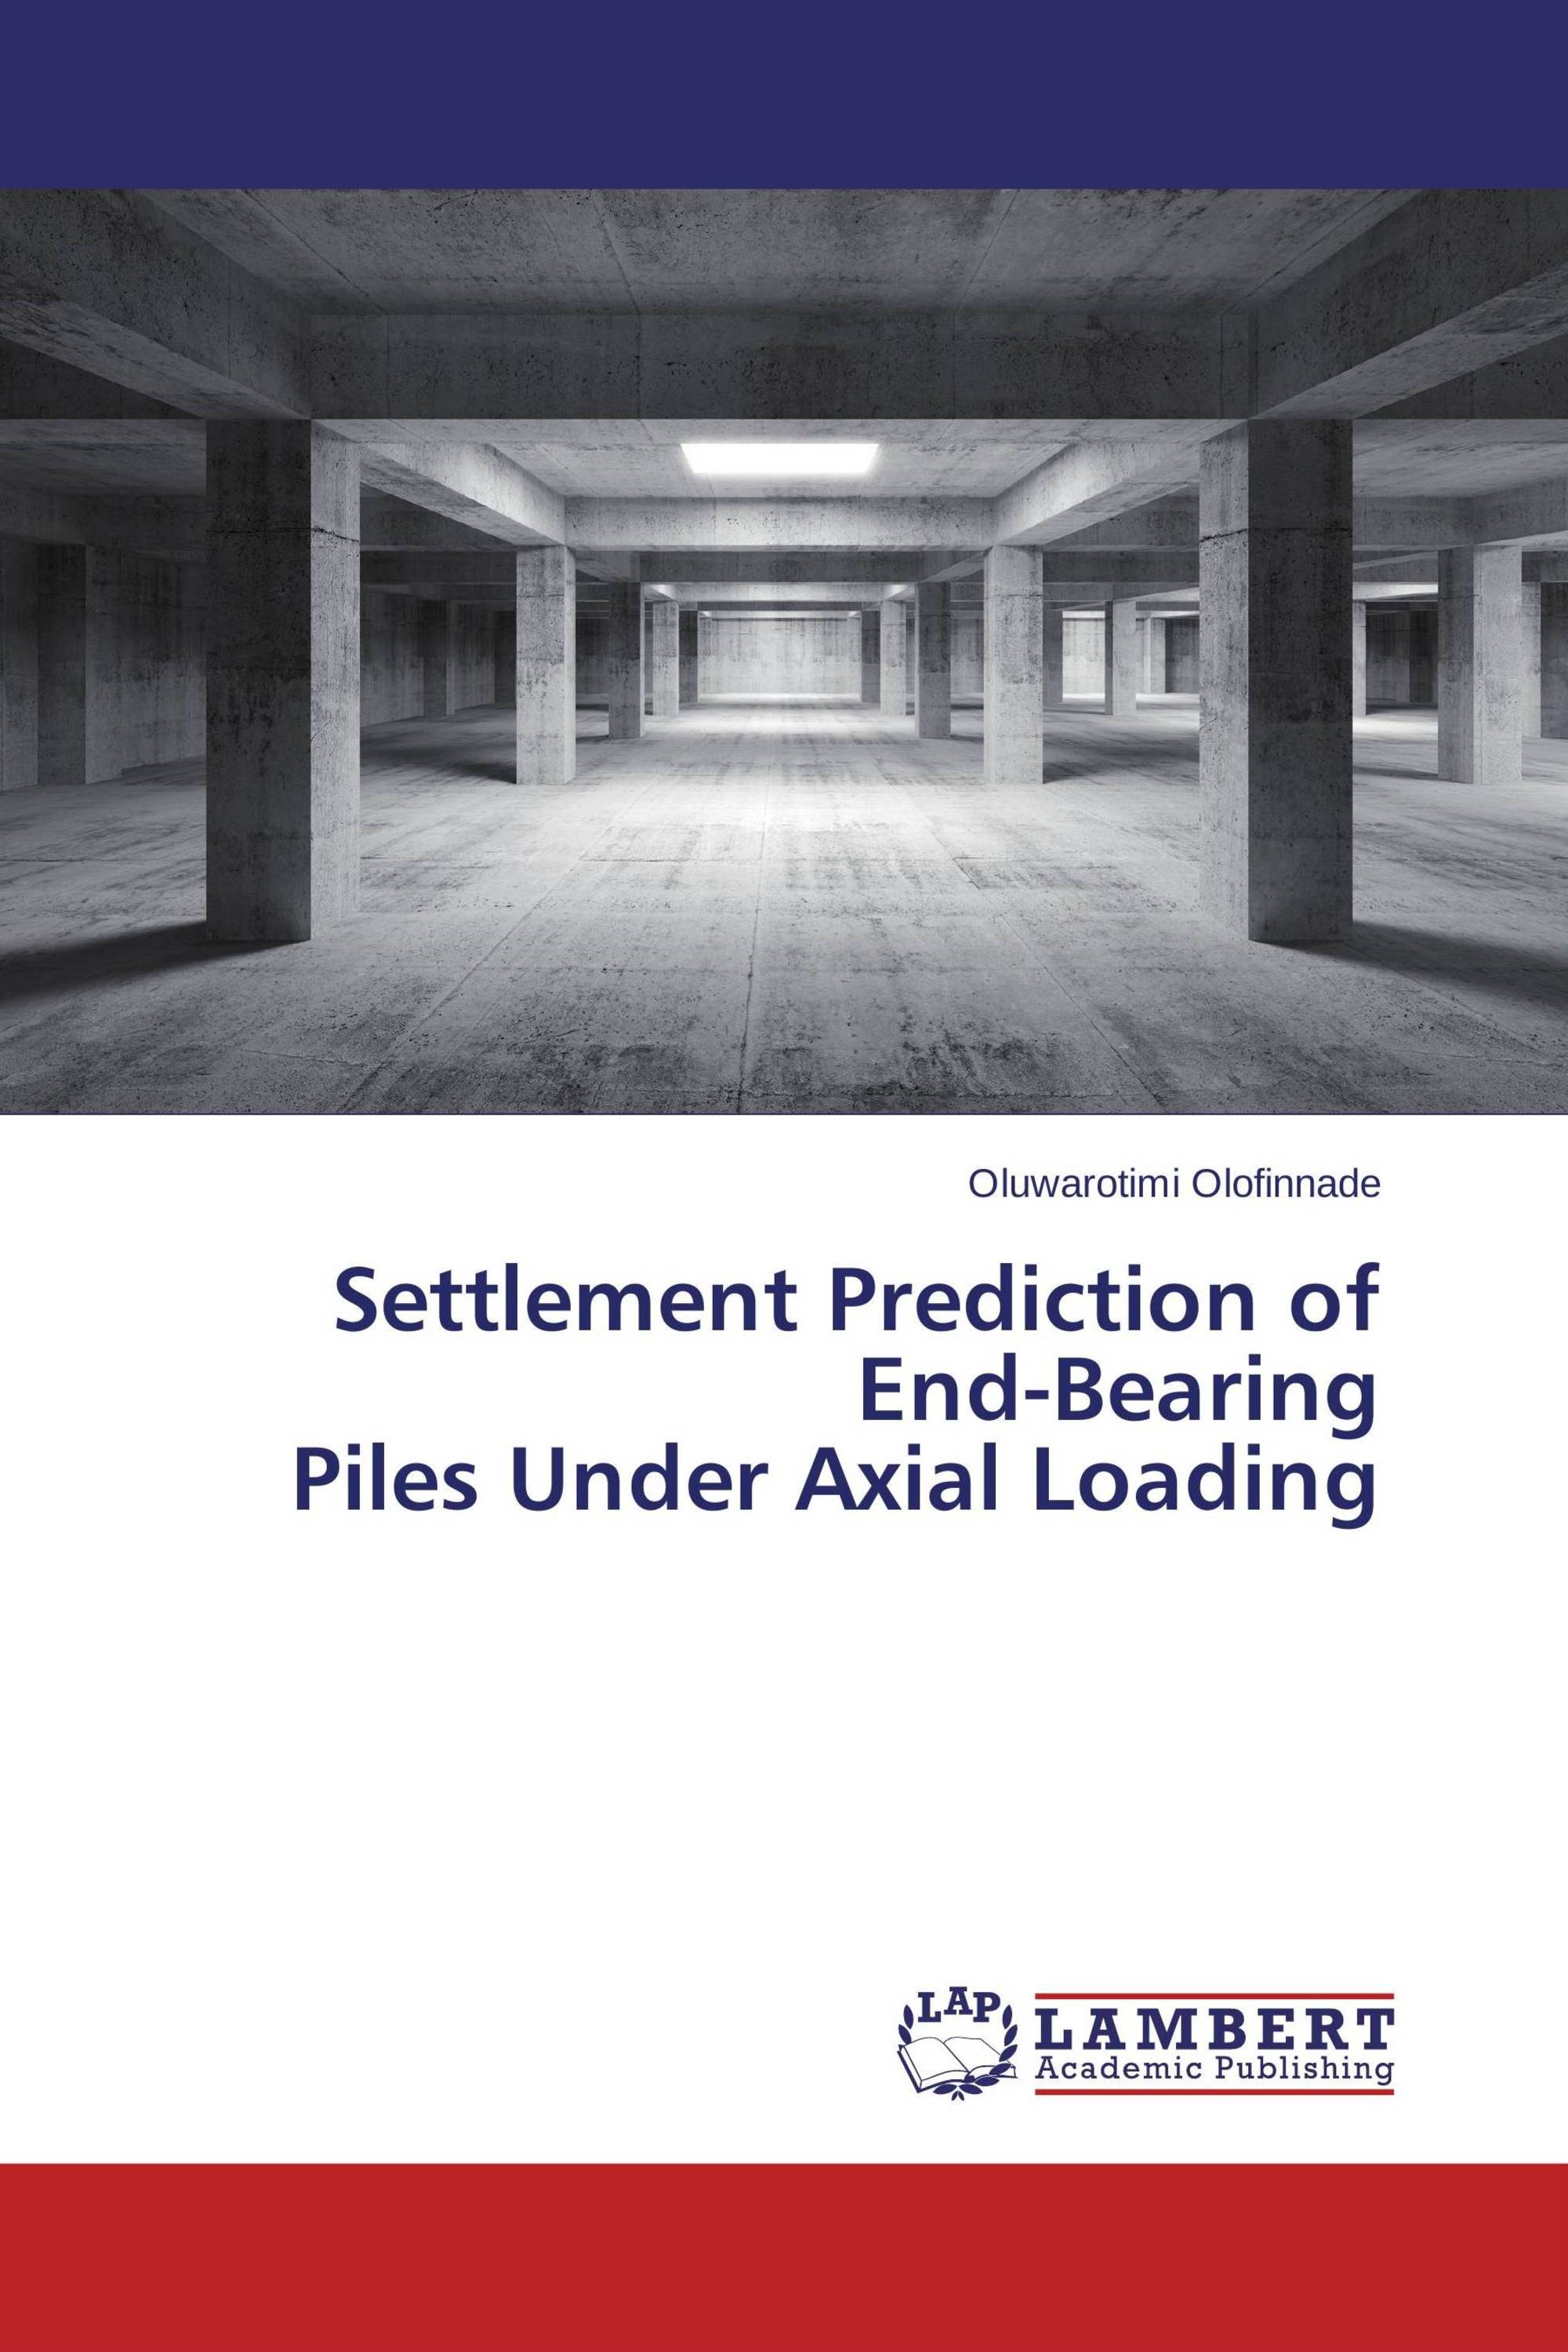 Settlement Prediction of End-Bearing Piles Under Axial Loading